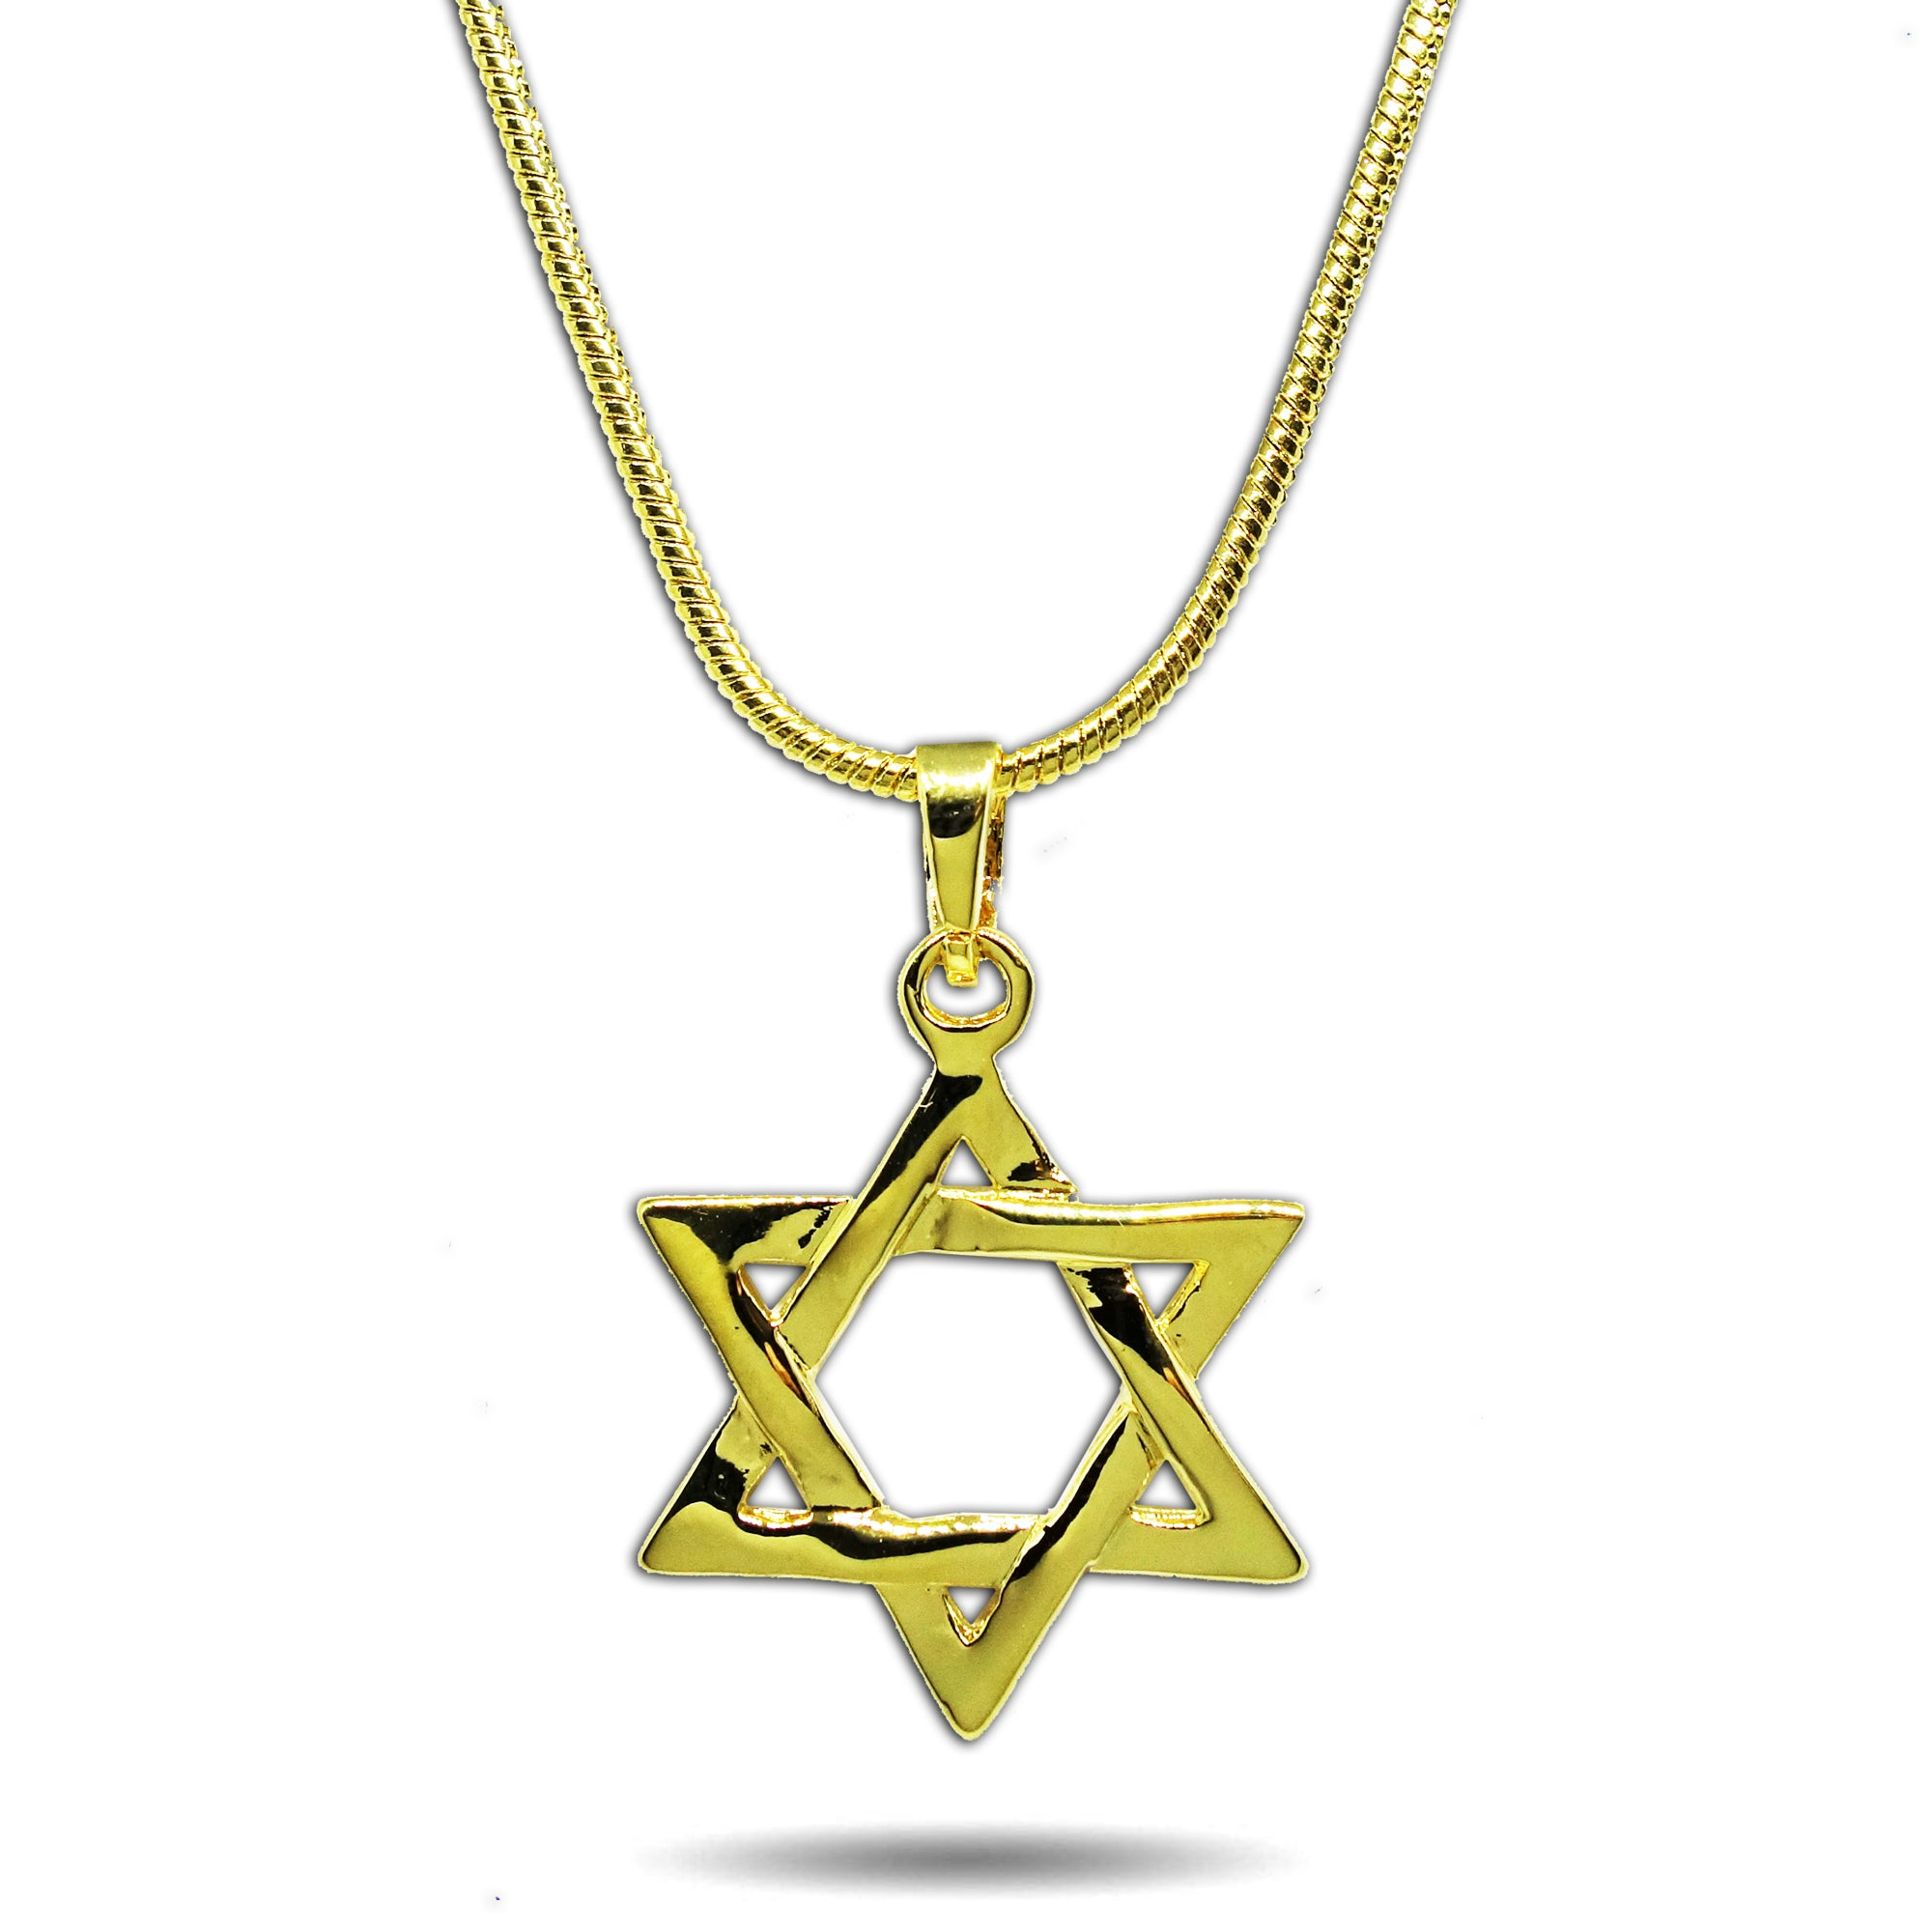 GOLD SMALL STAR OF DAVID PENDANT NECKLACE